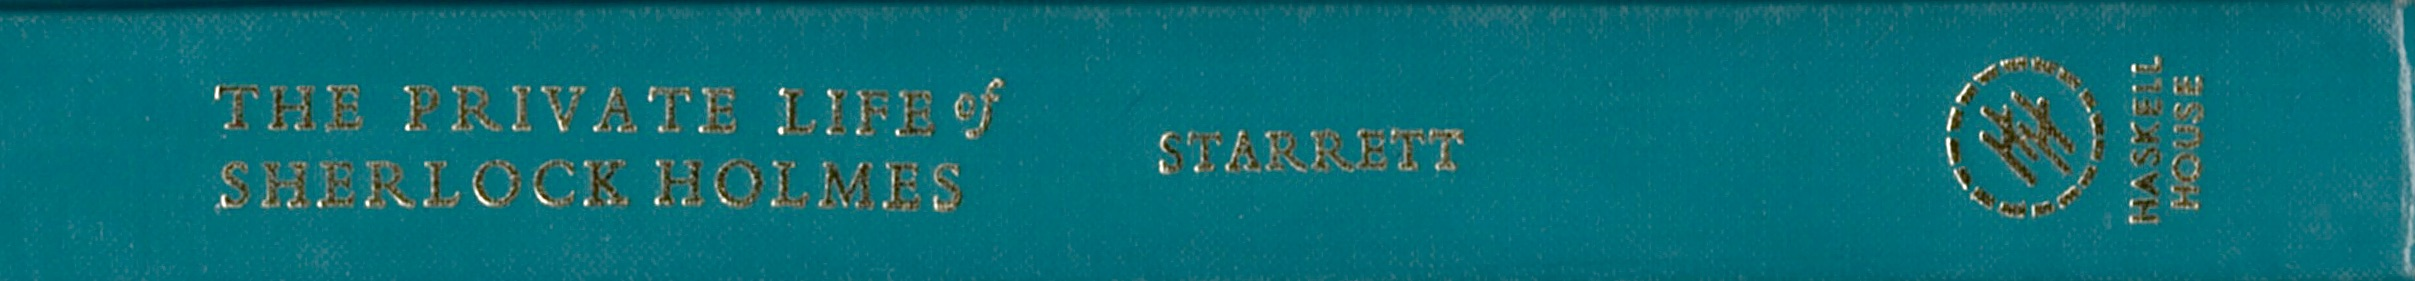 Spine of the Haskell House edition of  Private Life,  1971.